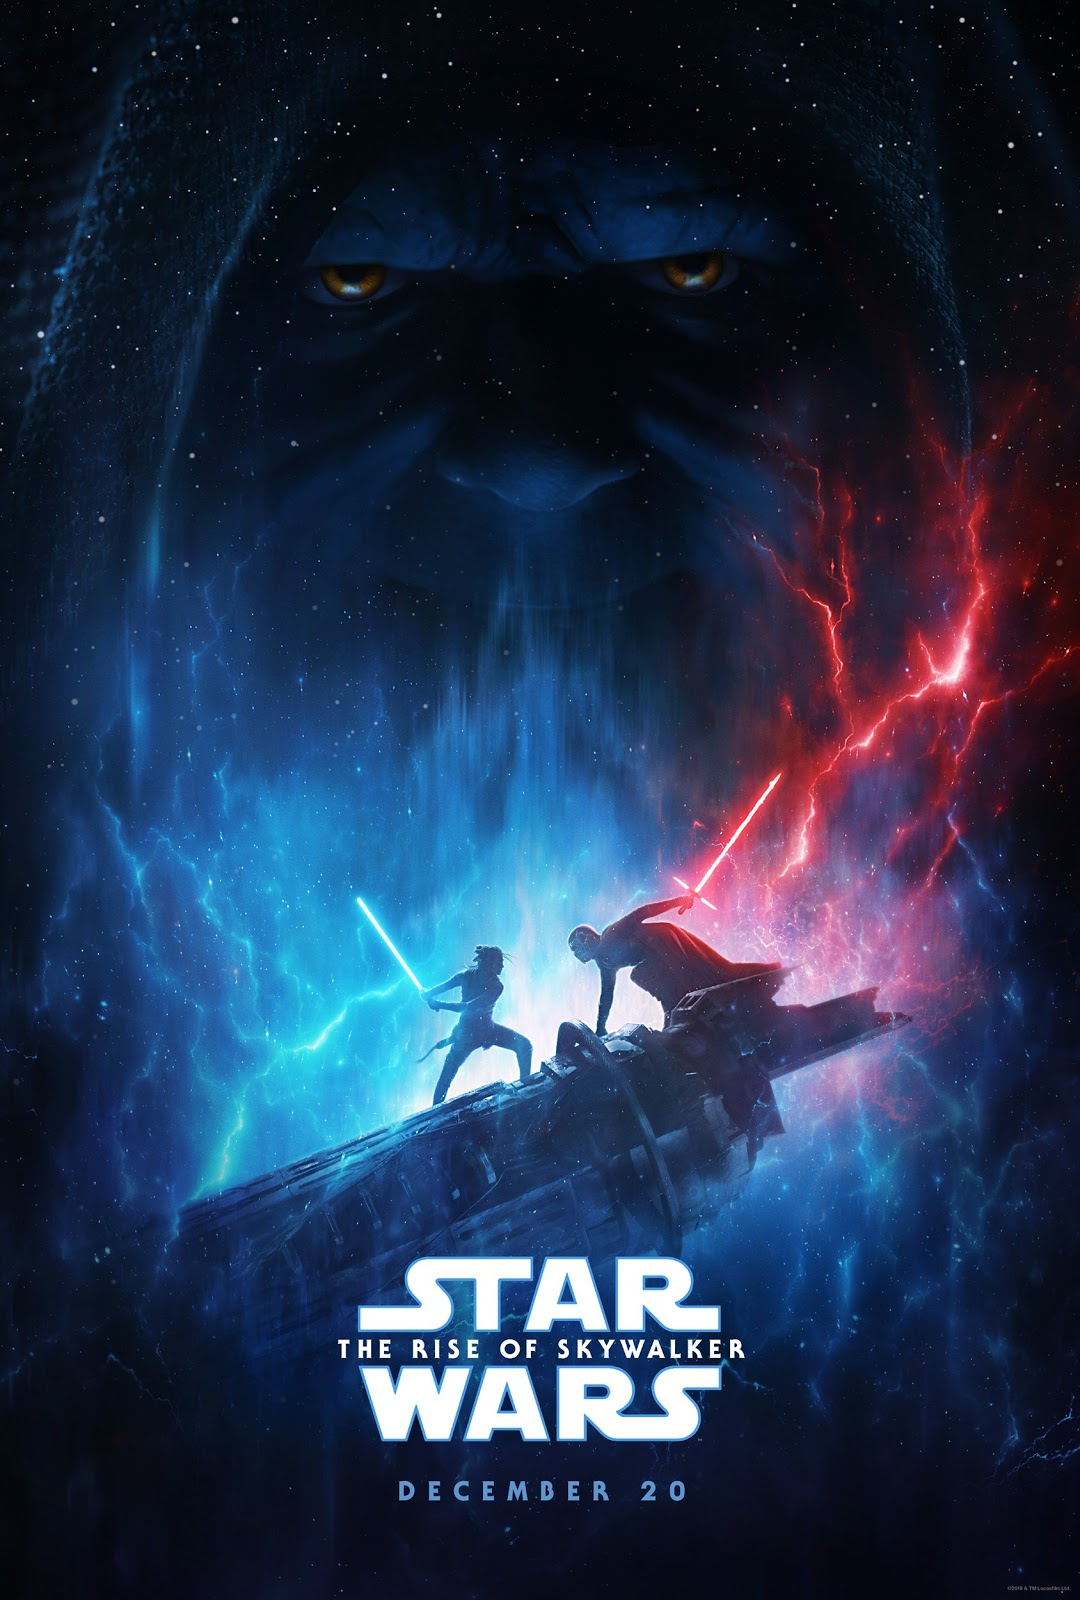 Star Wars The Rise of Skywalker D23 Expo poster